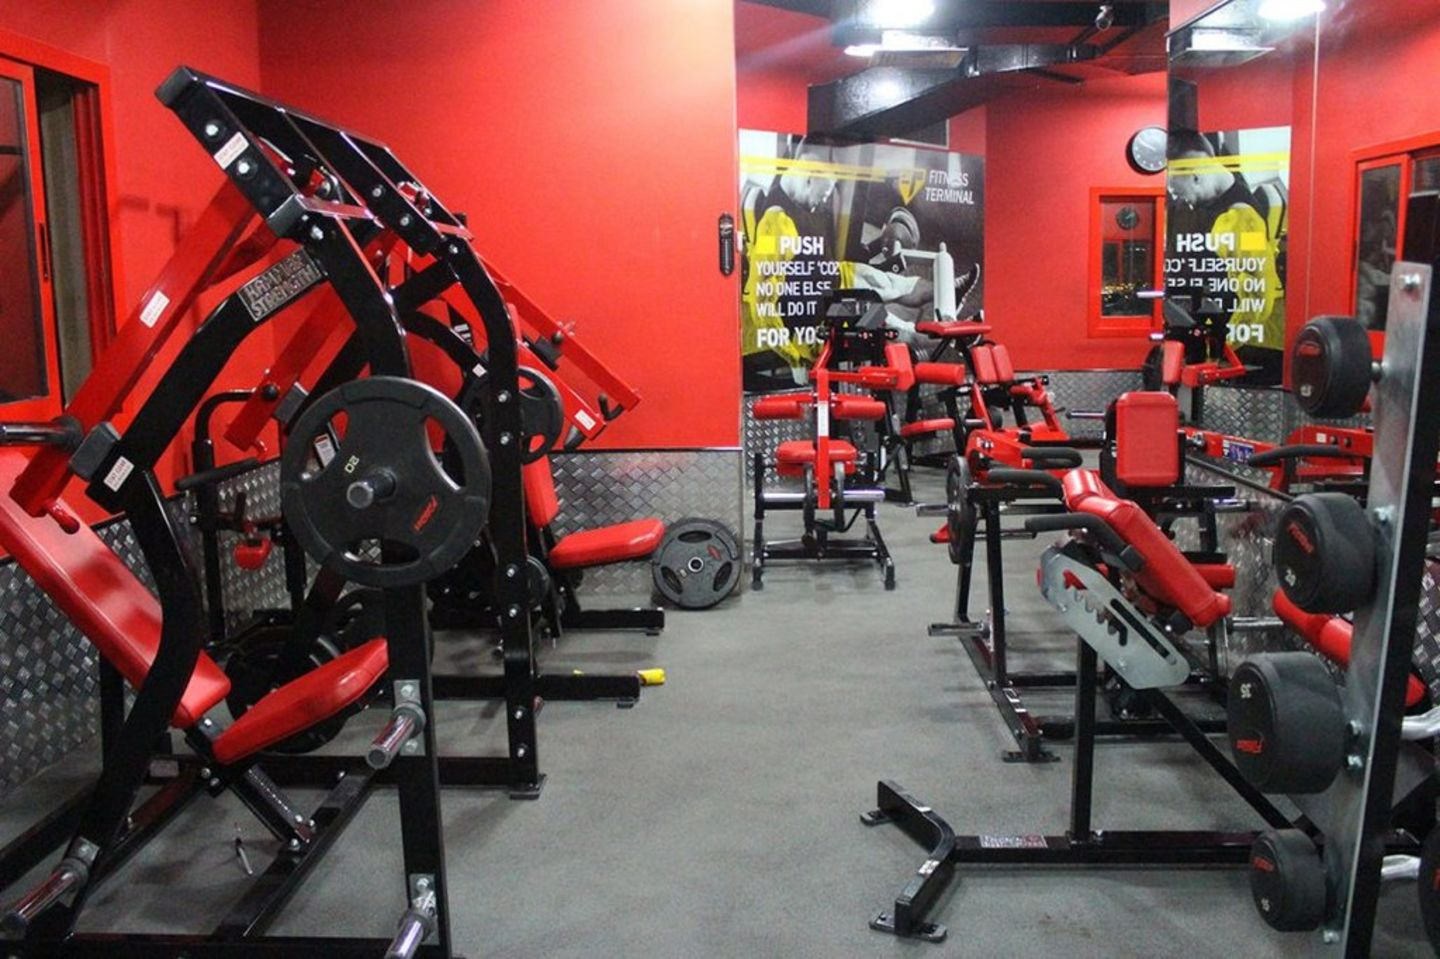 HiDubai-business-fitness-terminal-sports-fitness-gyms-fitness-centres-pools-al-warqaa-1-dubai-1